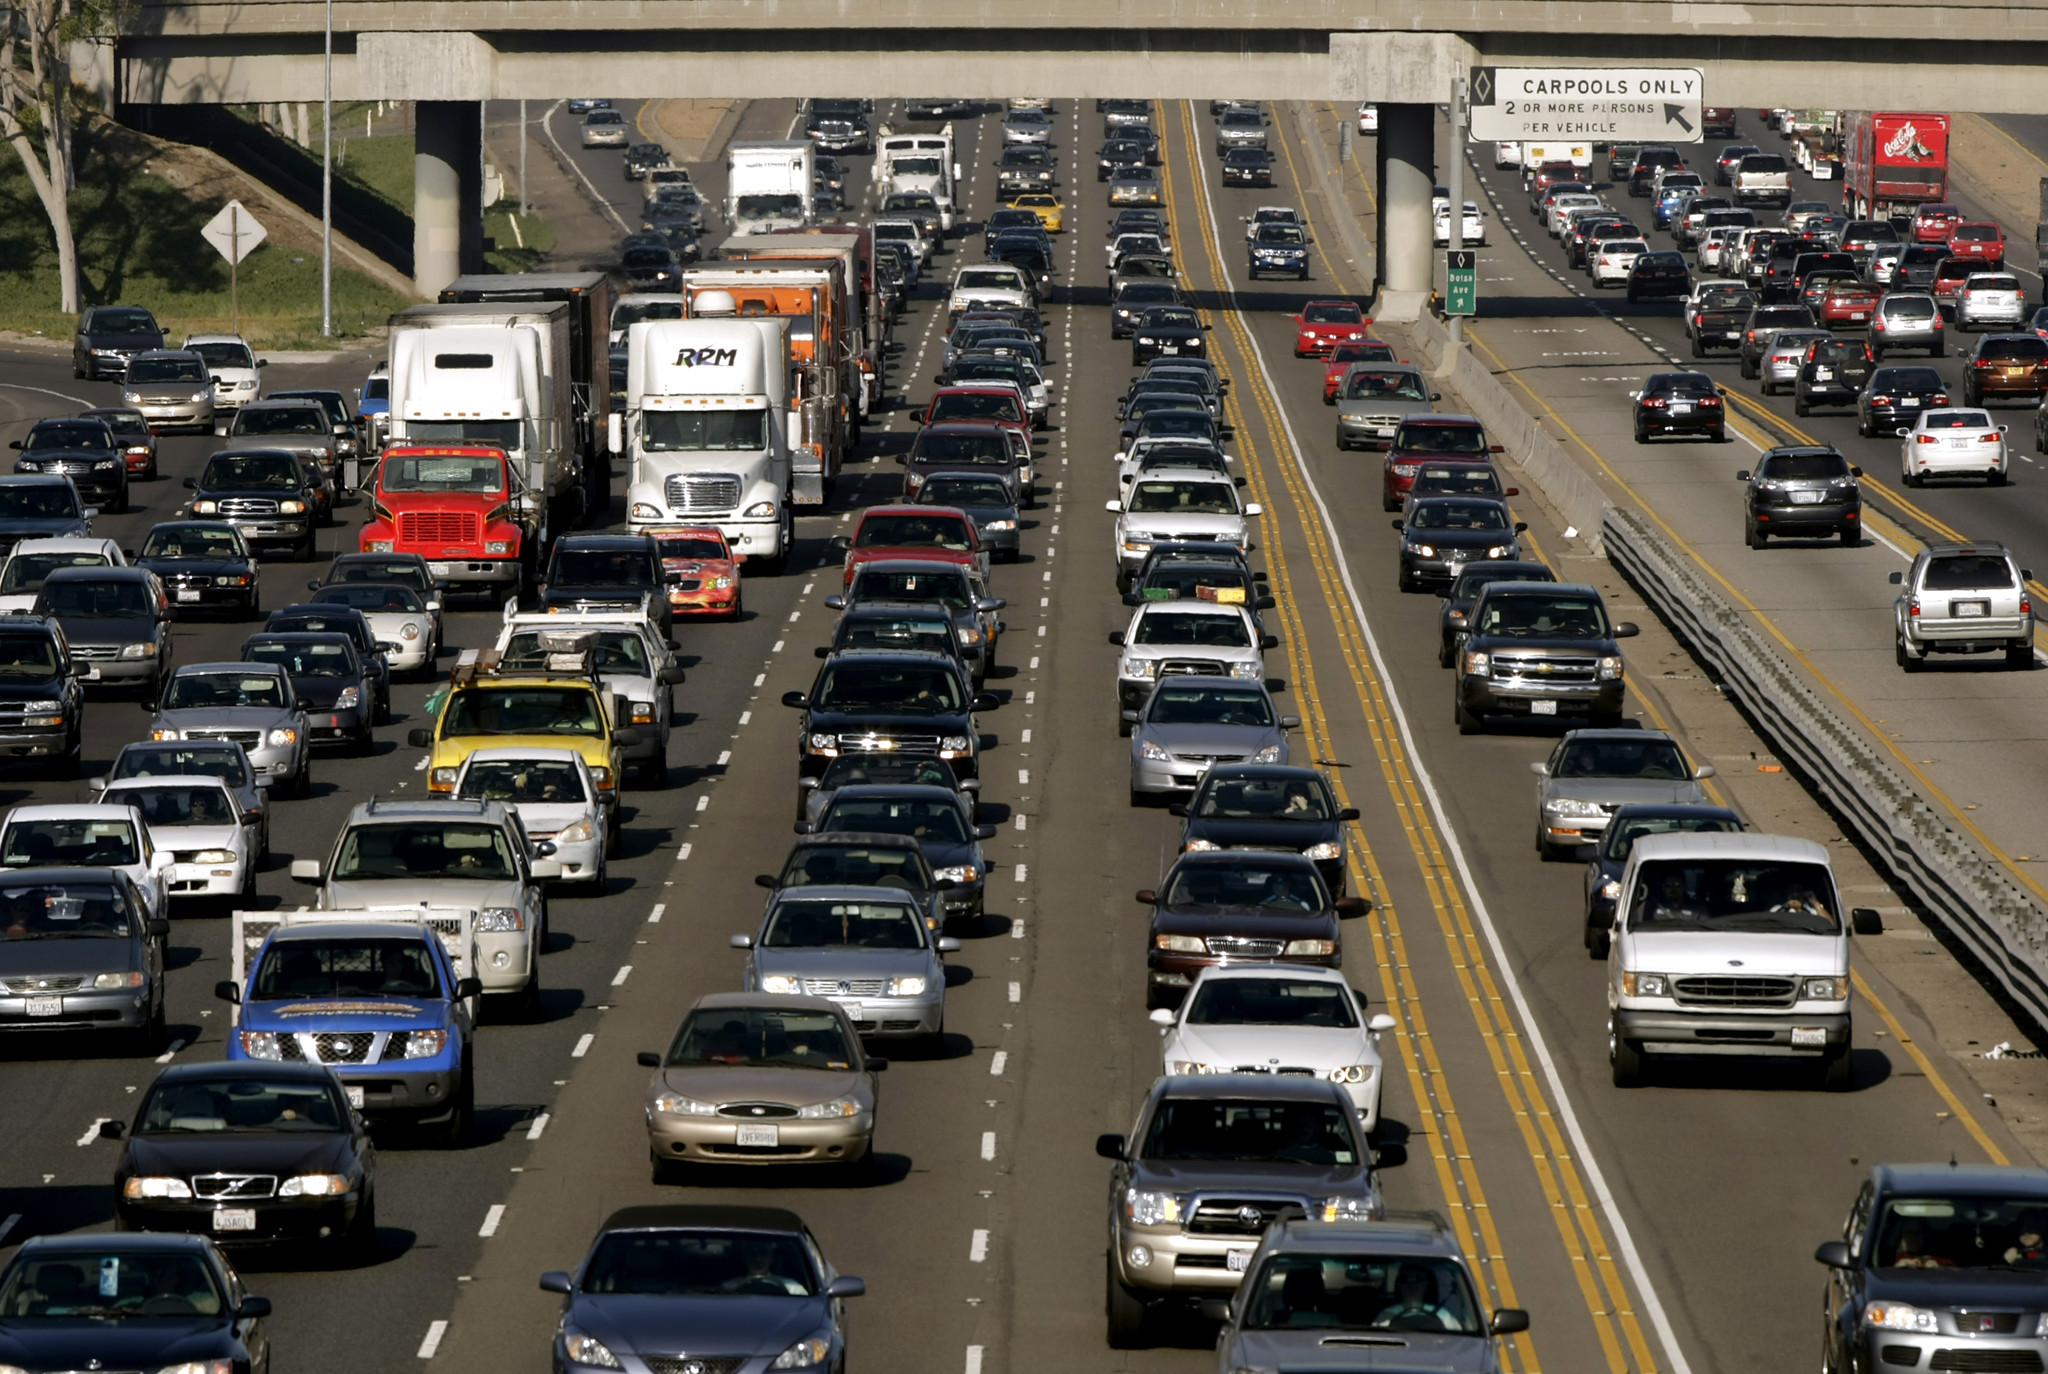 los angeles area can claim the worst traffic in america again los angeles area can claim the worst traffic in america again la times